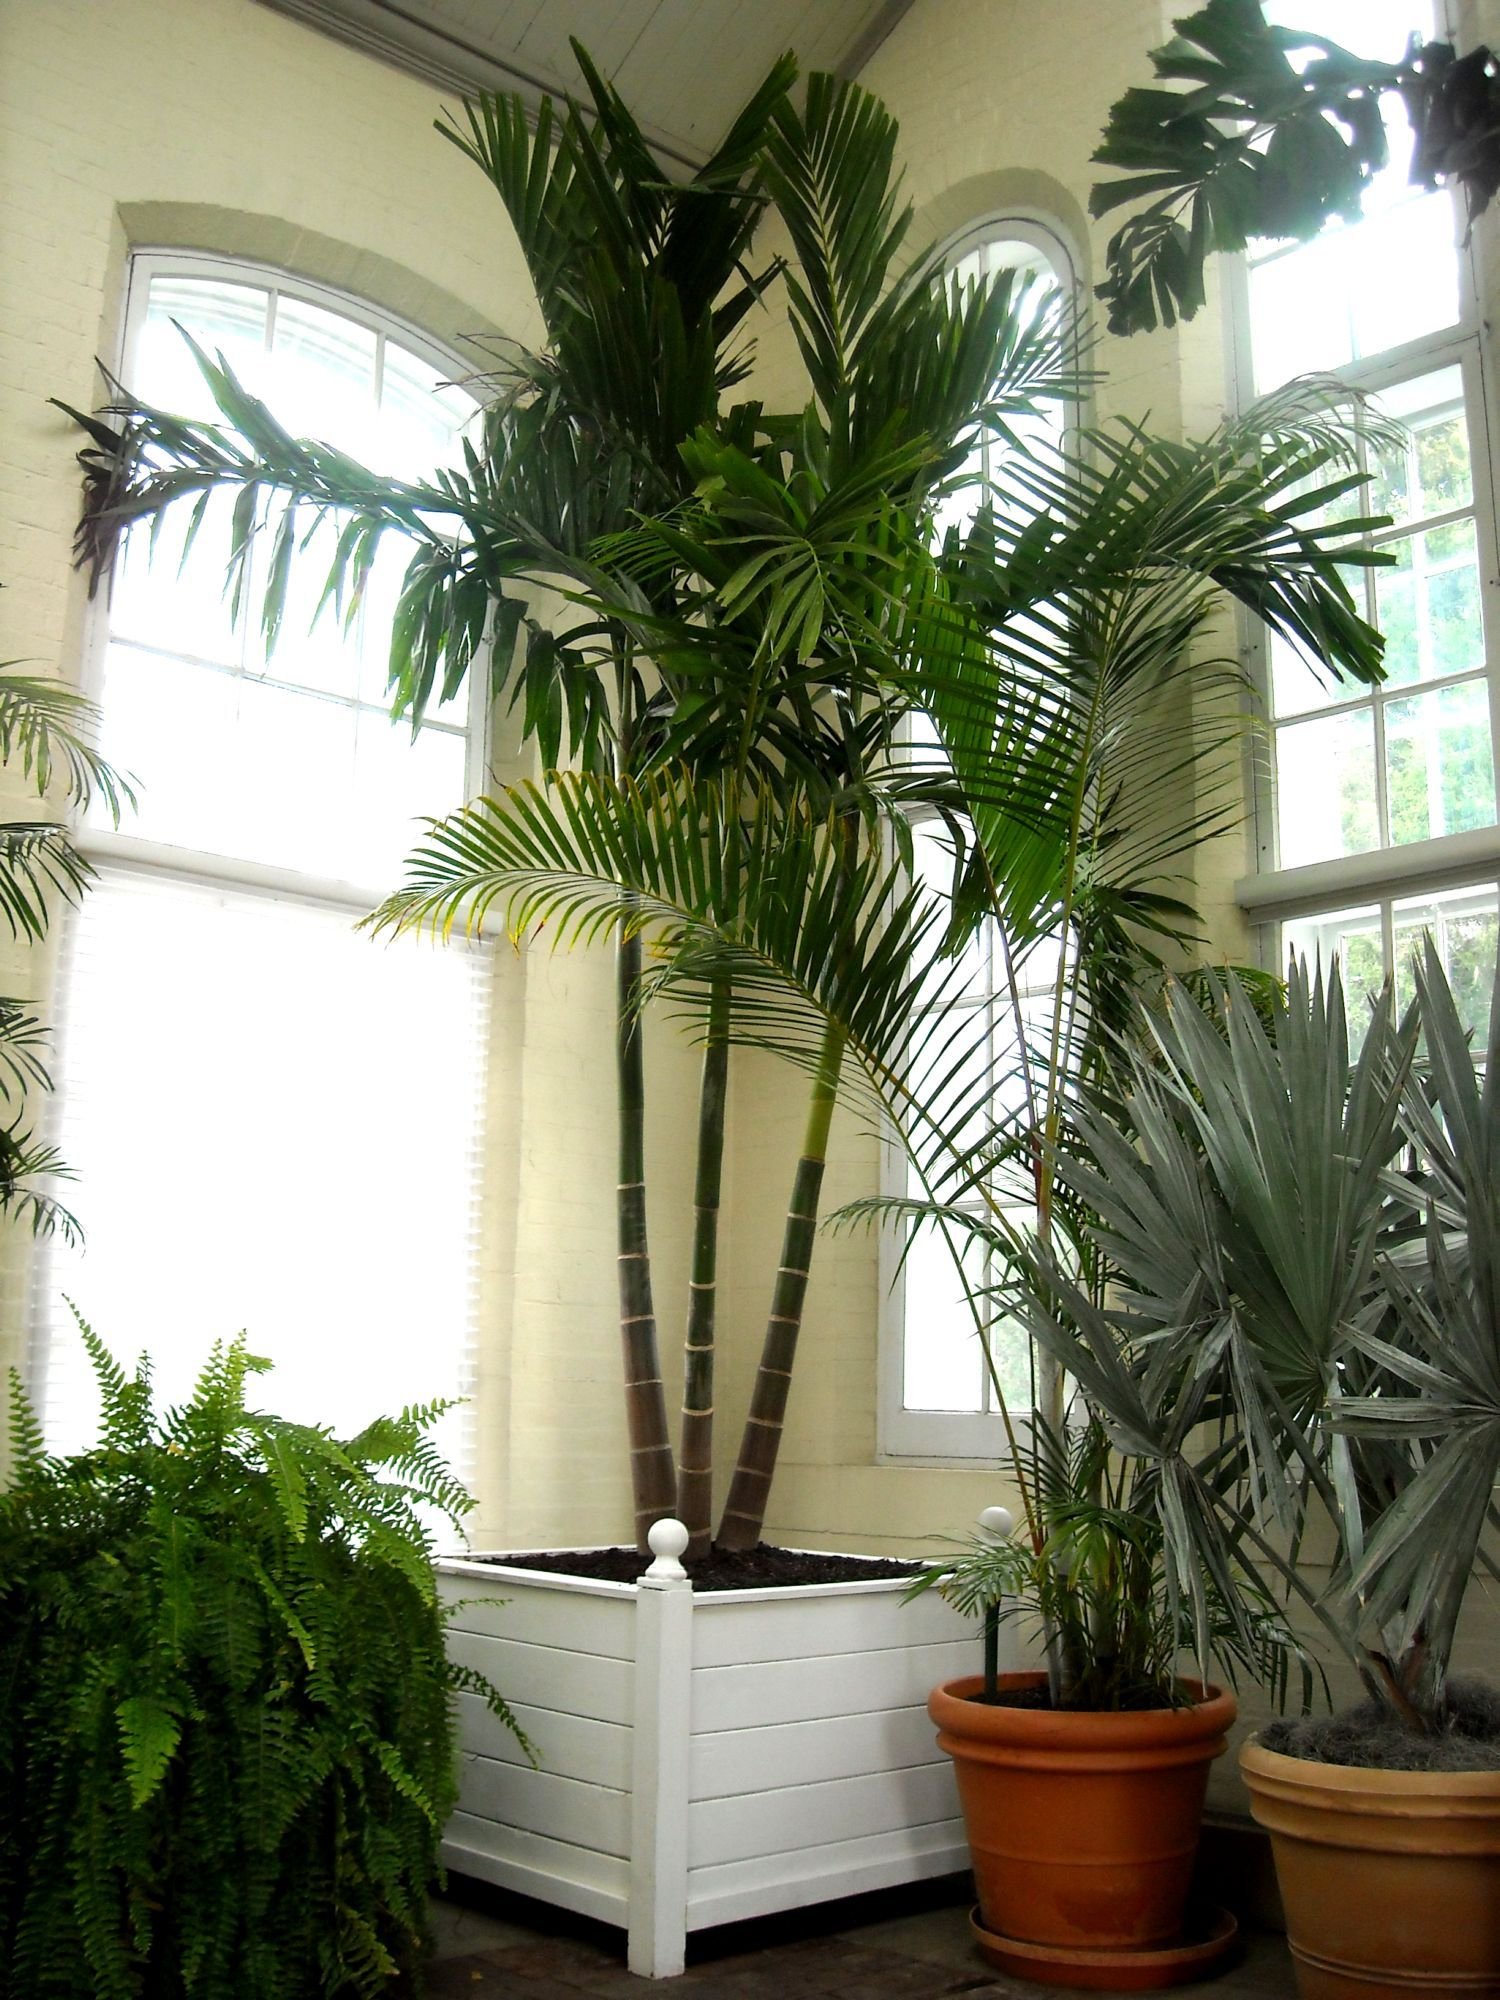 7d137beb56dbce3bd46278fce1a35655 Palm House Indoor Plants Buy on names of the palms for house plants, indoor house plant care, indoor palm berries, indoor pond plants, indoor palm plant identification, indoor tree plants, tropical house plants, best indoor plants, indoor garden plants, cold hardy house plants, indoor palm propagation, indoor houseplants identification, indoor palm seeds, indoor palm bushes, large indoor plants, common indoor plants, names of indoor plants, indoor palm plant diseases, indoor greenhouse plants, indoor spring plants,